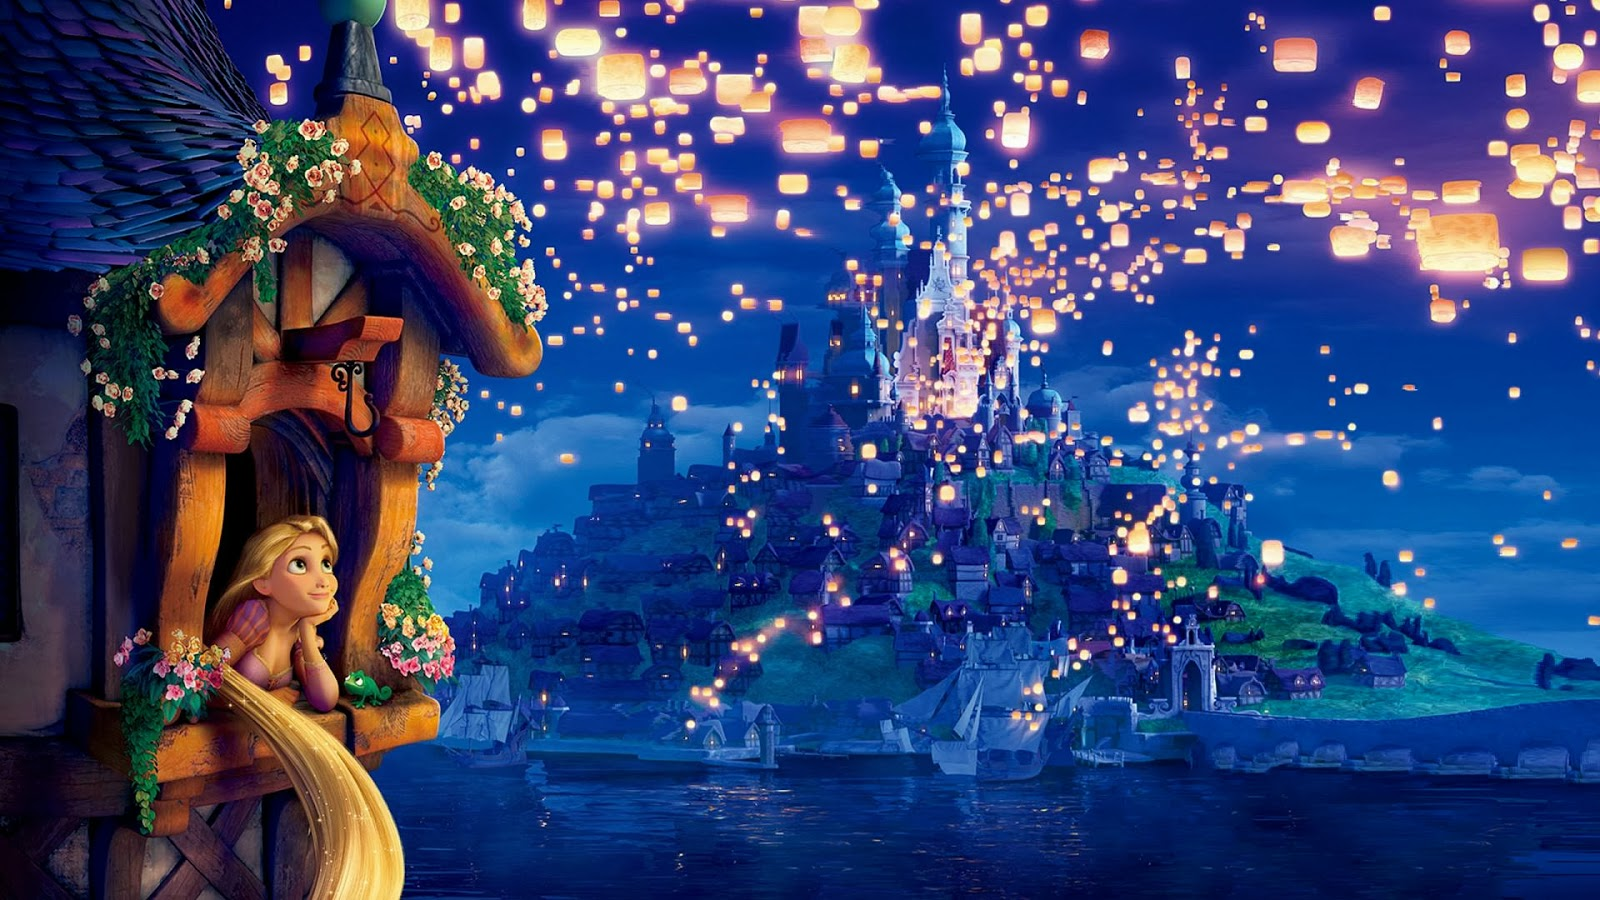 Download Disney Movies Wallpapers Kids Online World 1600x900